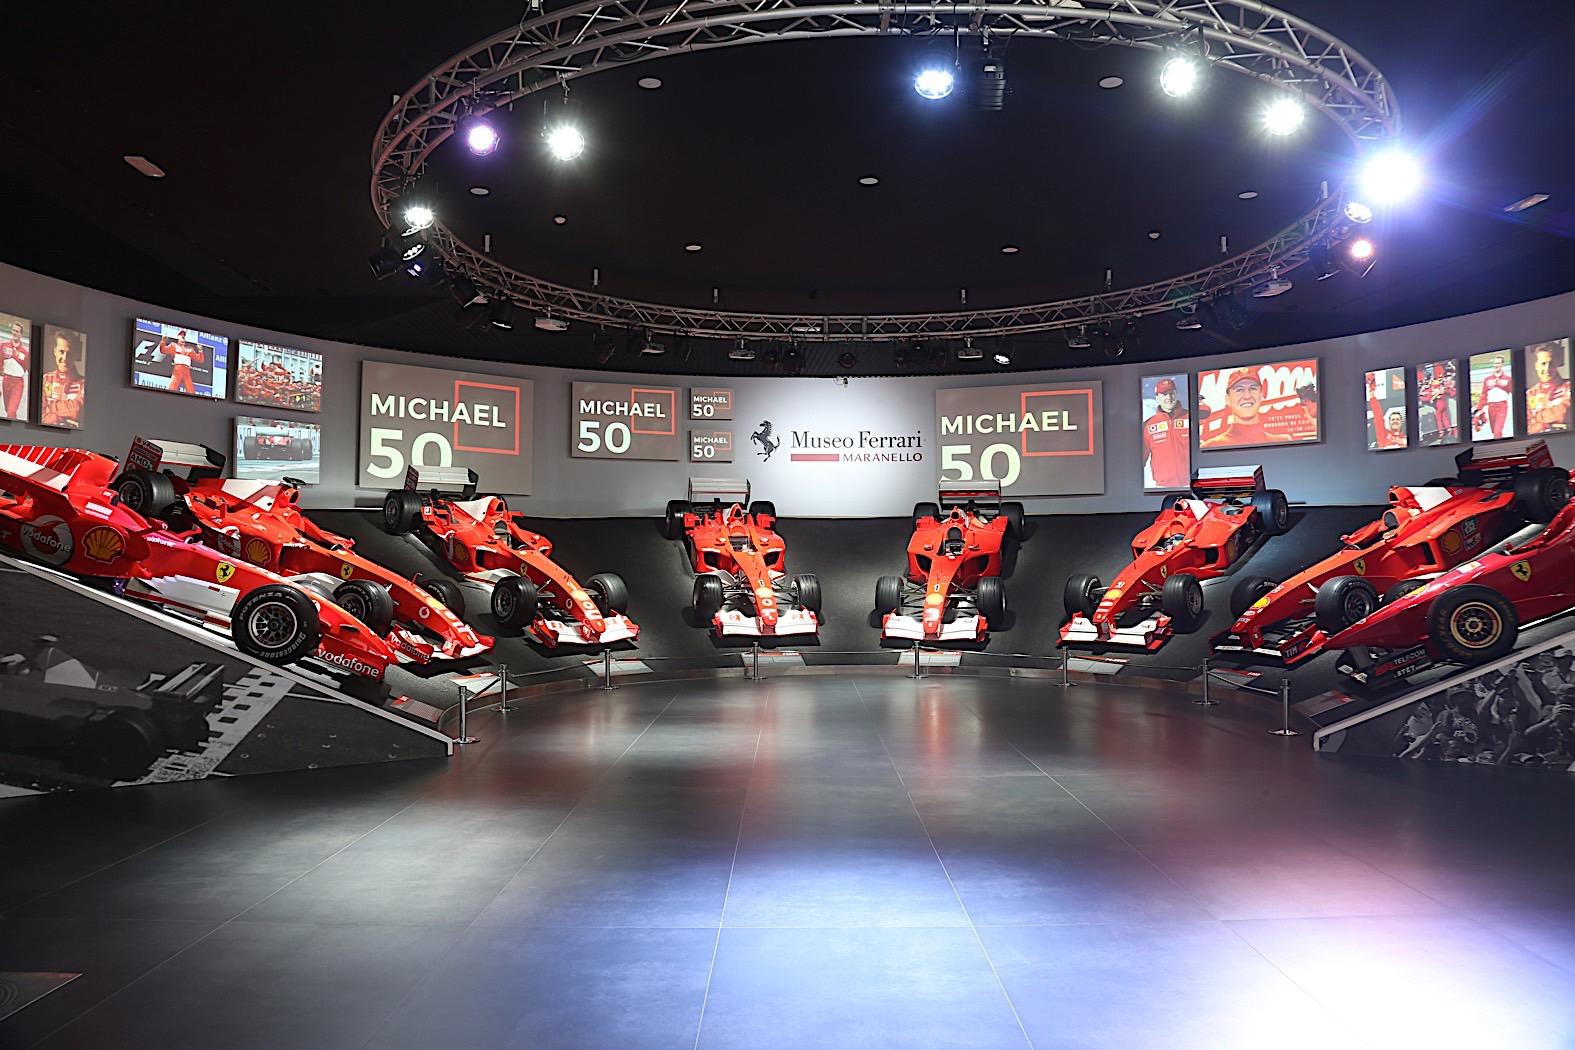 The 'Michael 50' Exhibit at the Ferrari Museum